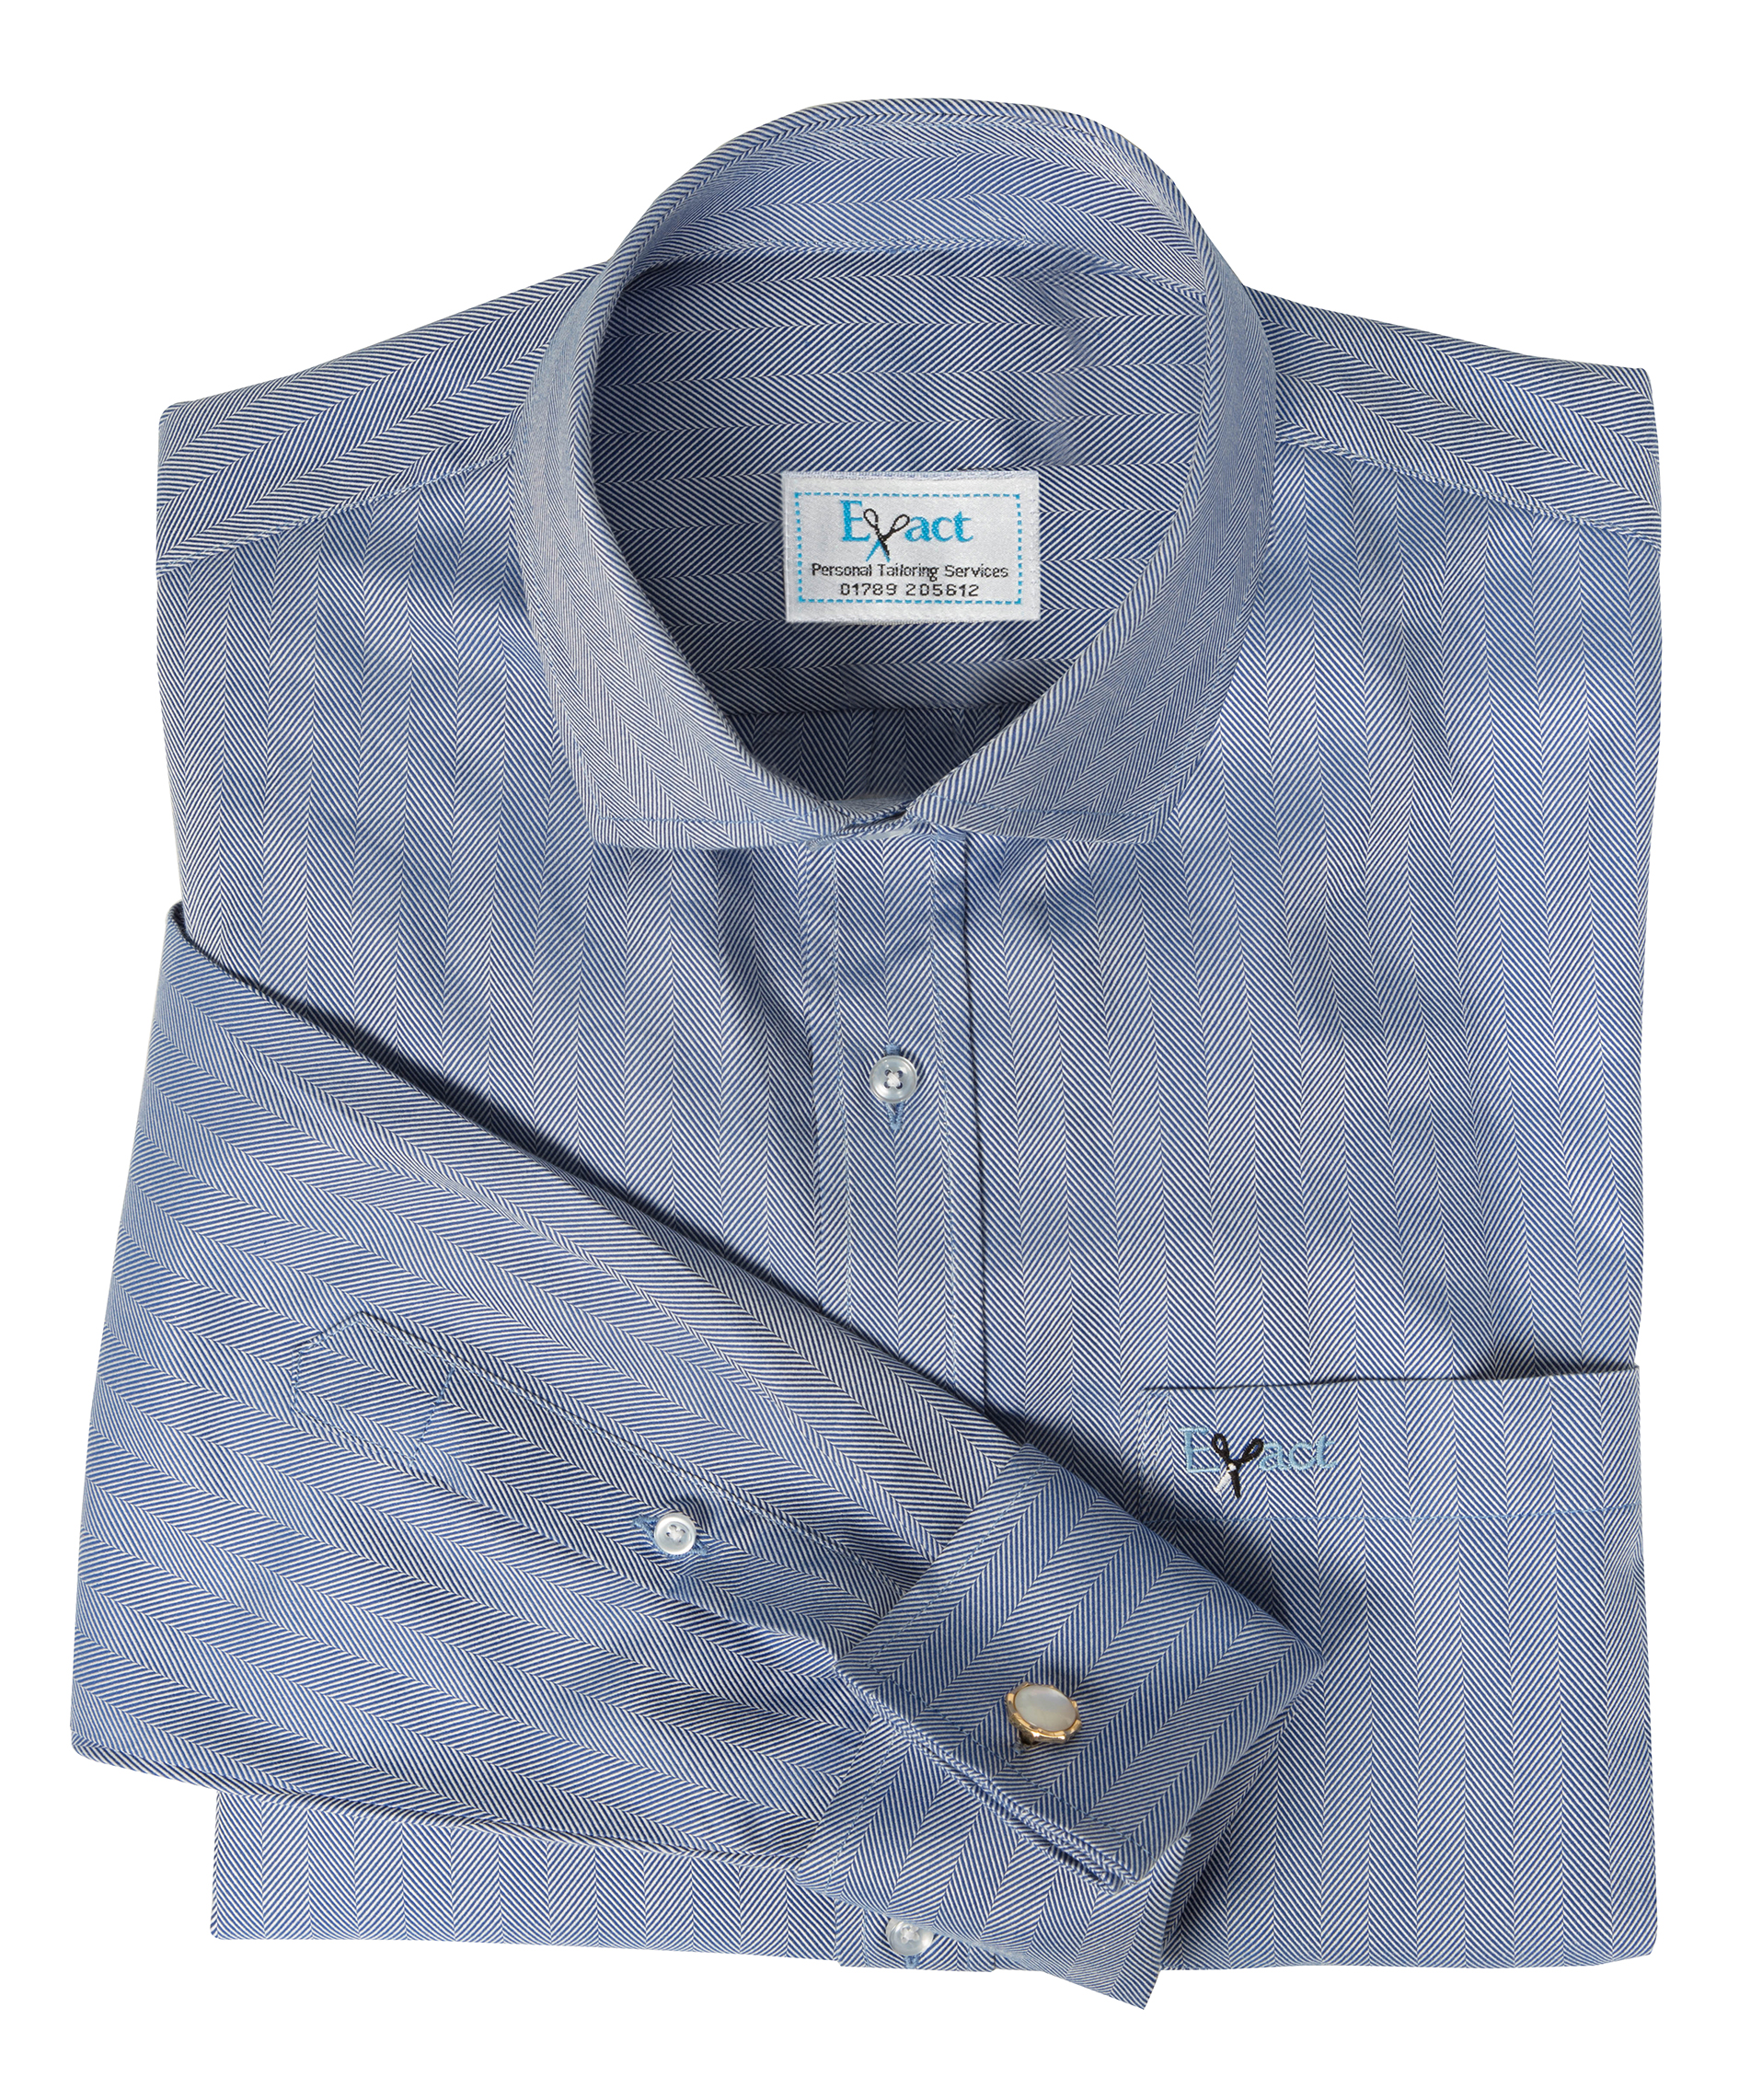 Buy tailor made shirts online - Presidents Range - Dark Blue Herringbone